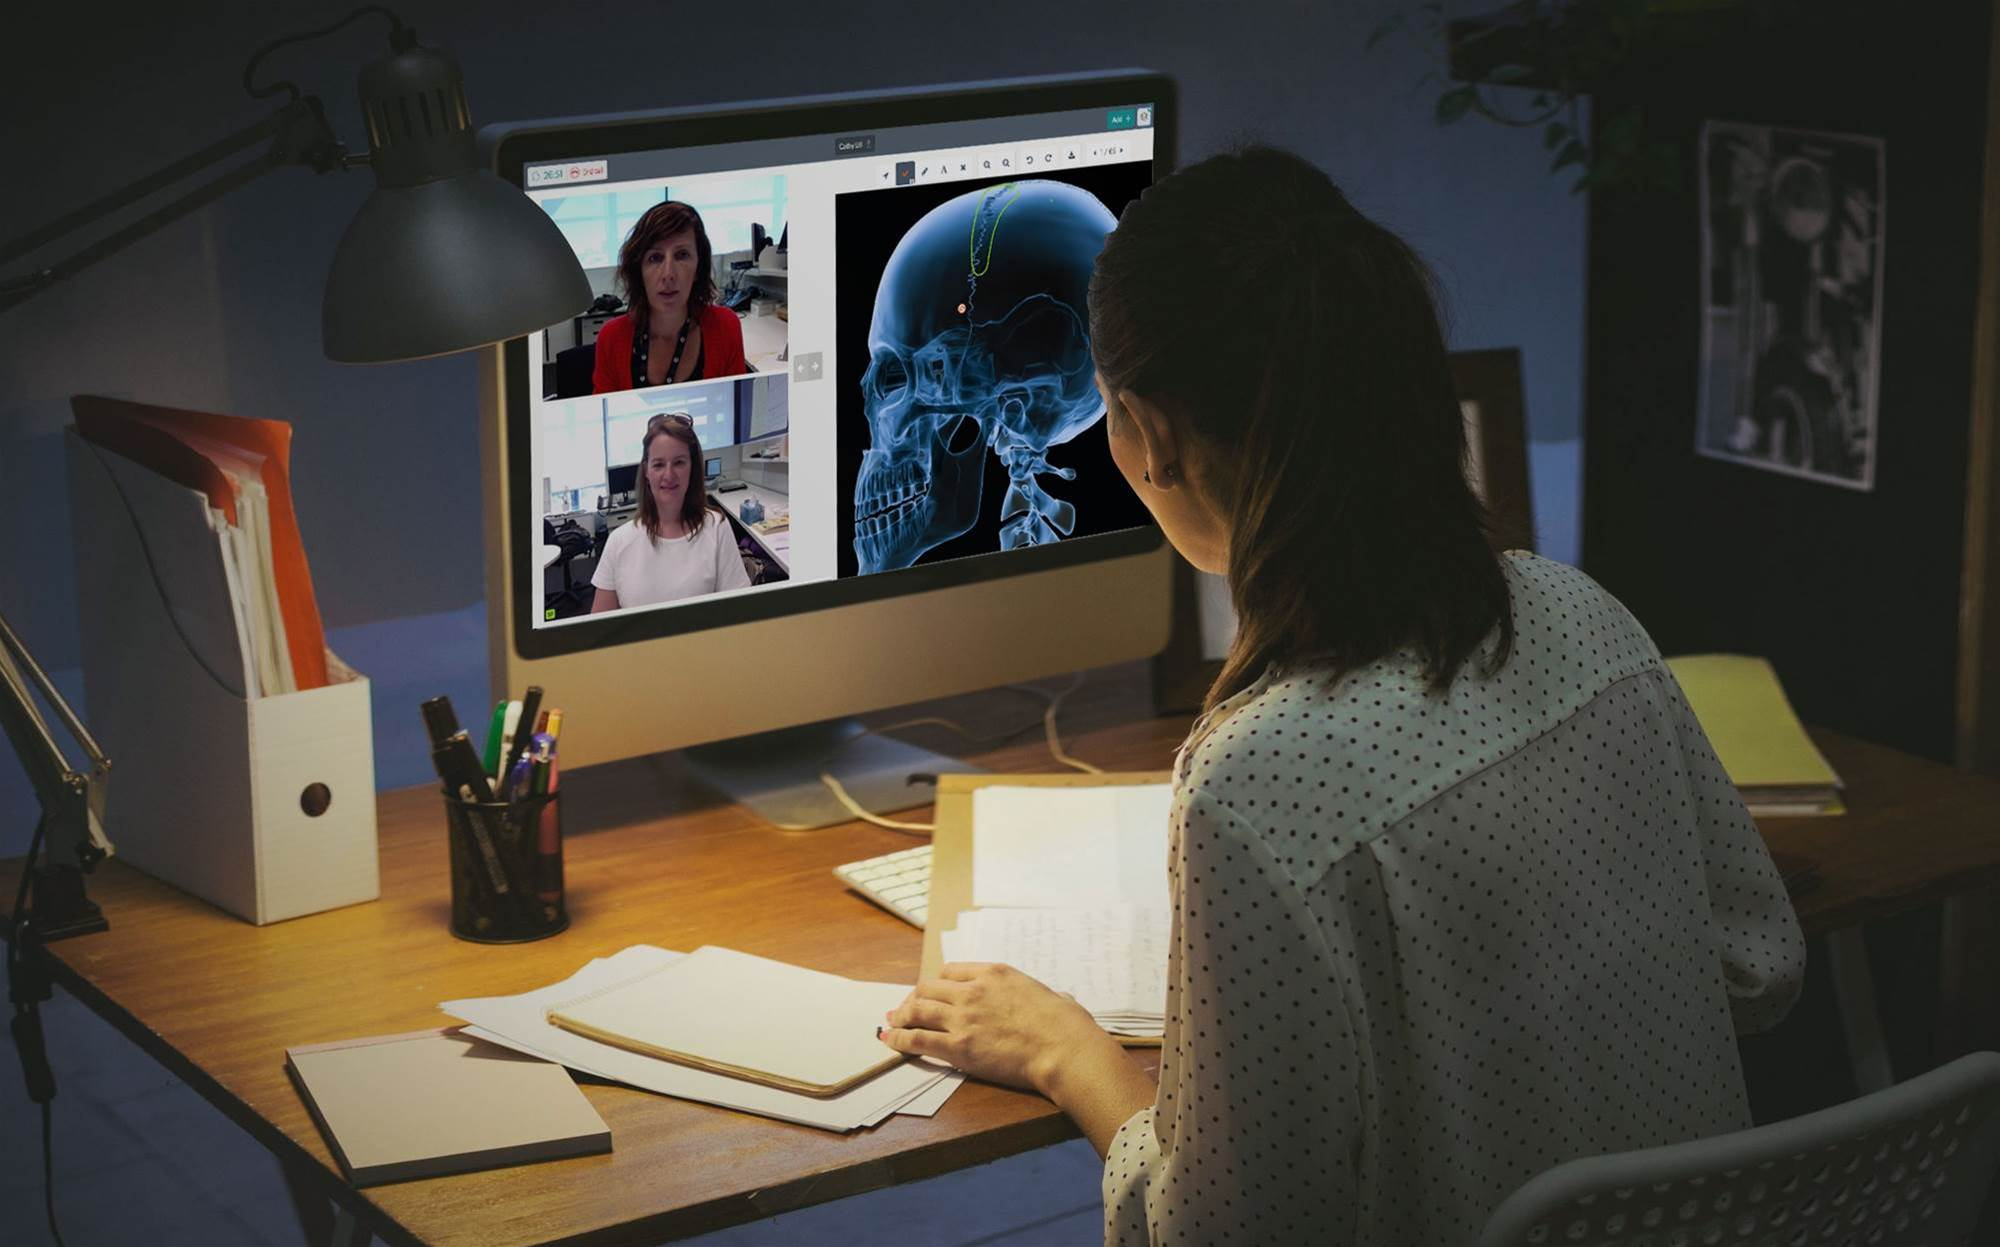 Swinburne taps Data61 spin-out for telehealth education